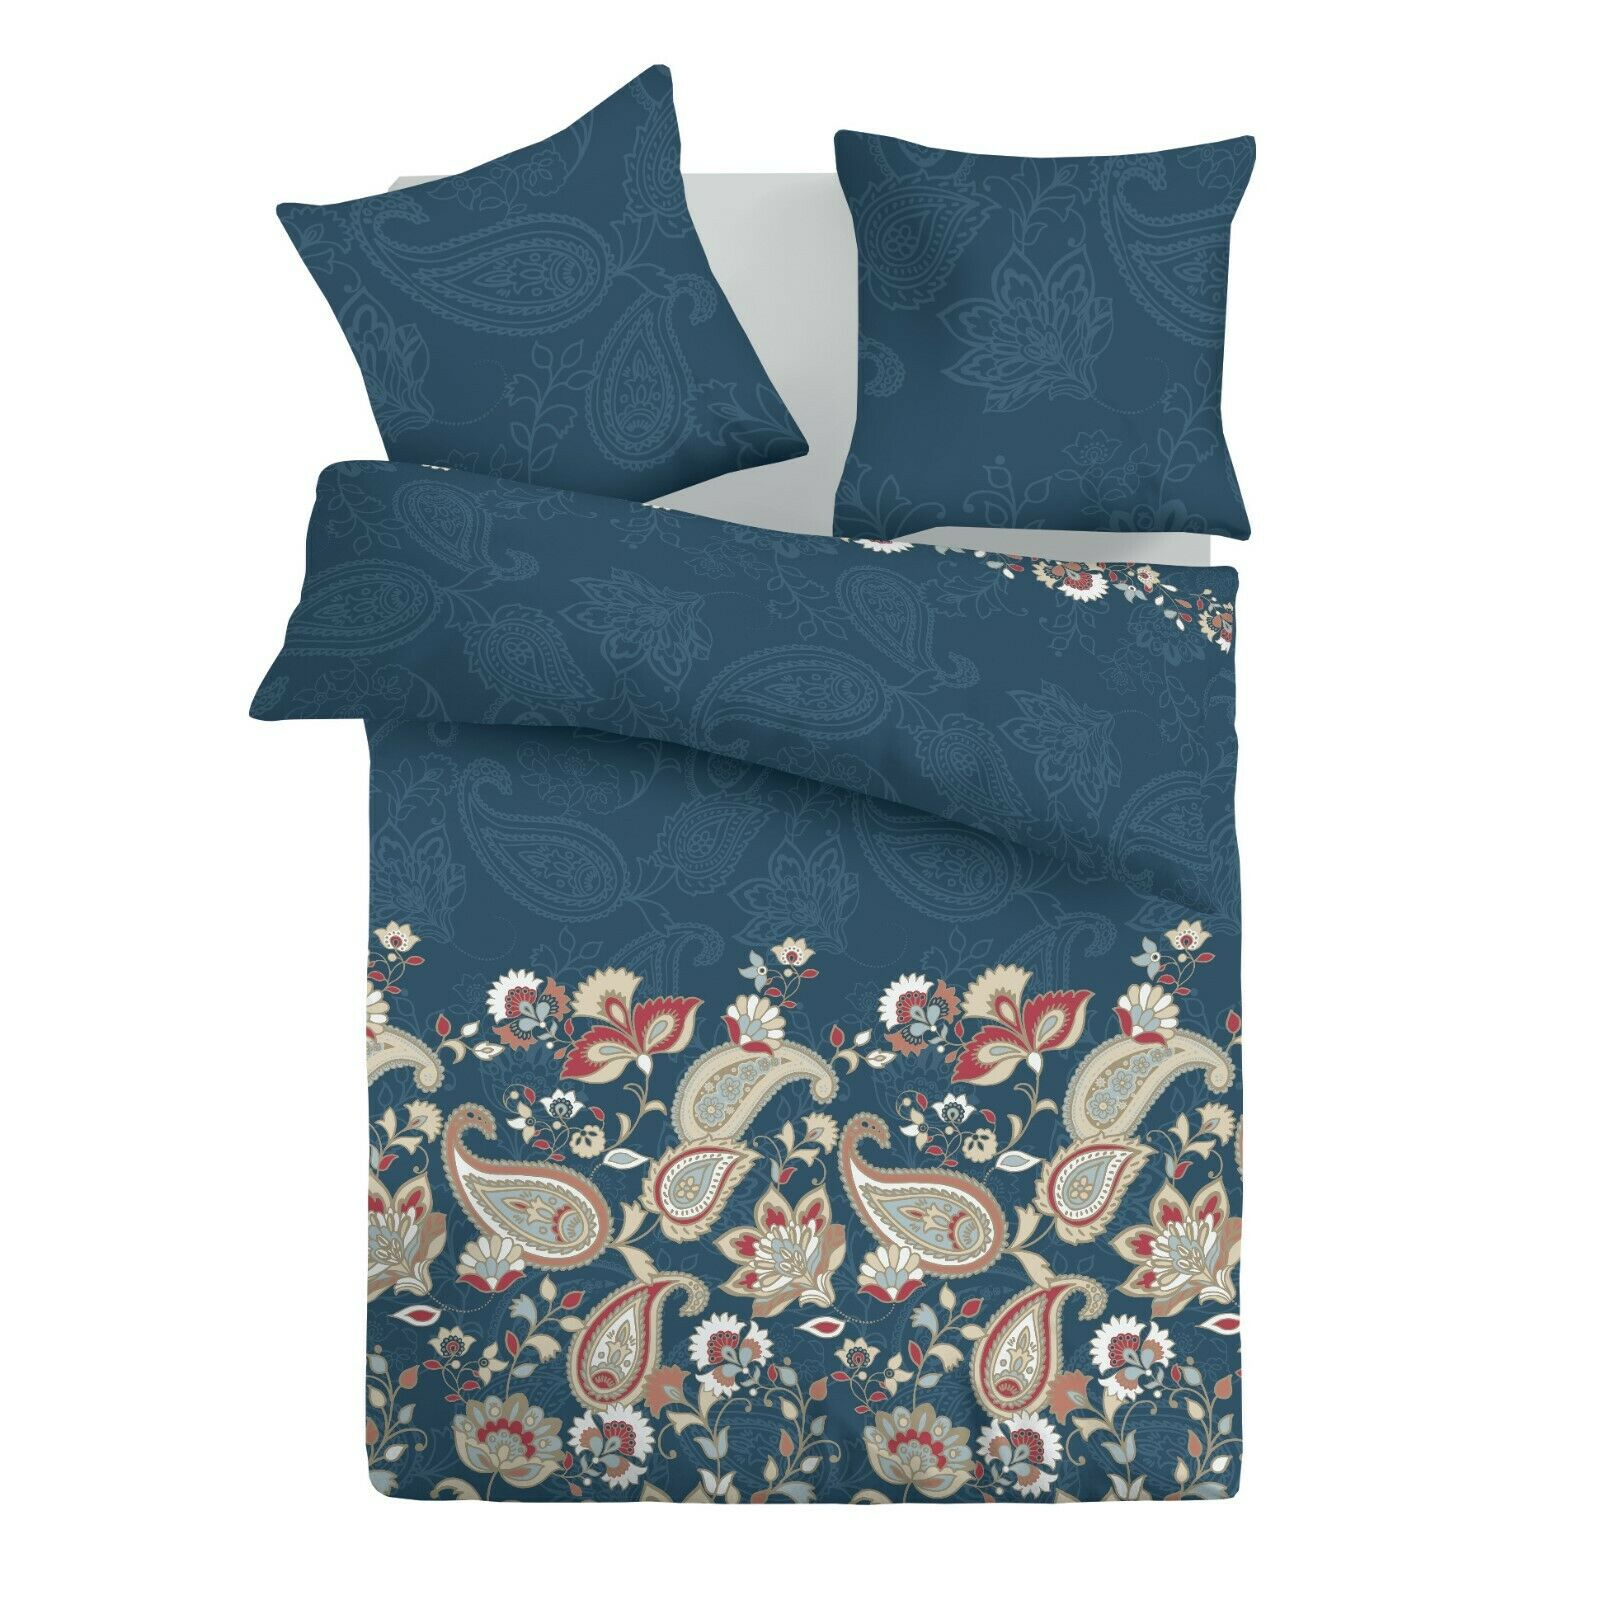 Olimpia - SoulBedroom 100% Cotton Bedding Set (Duvet Cover & Pillow Cases)